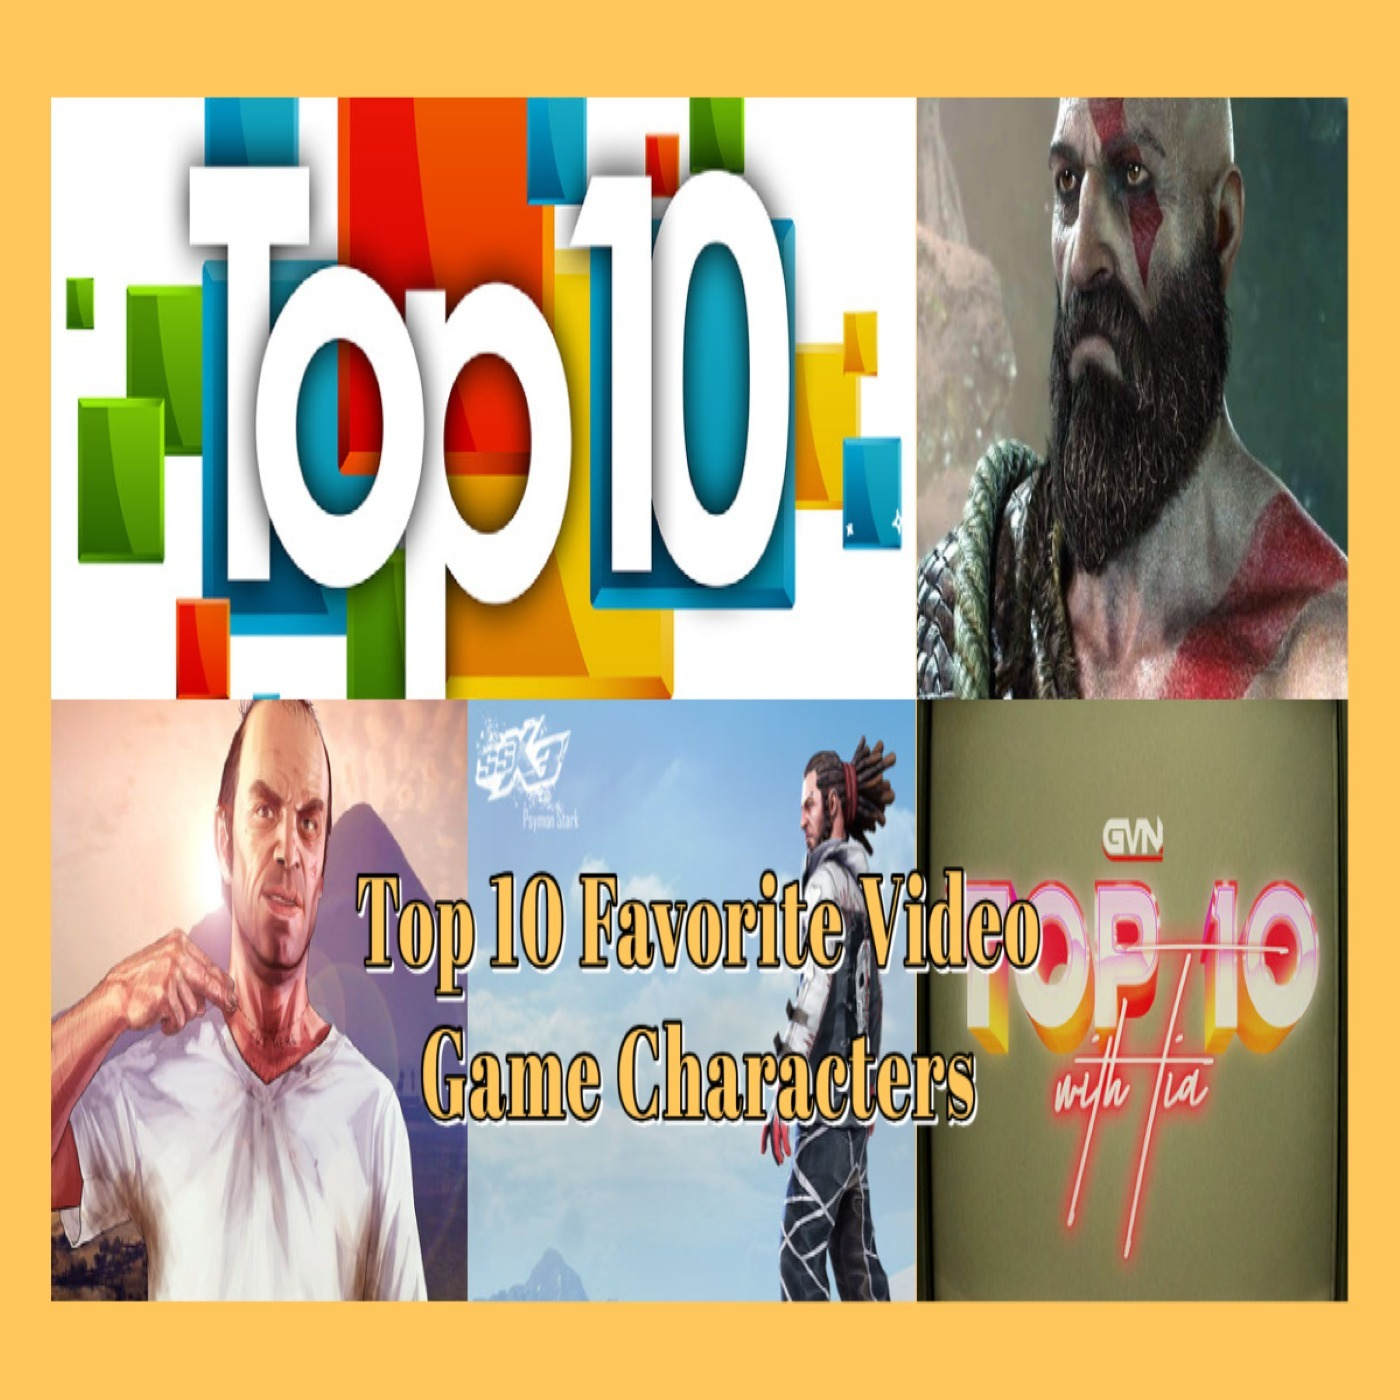 GVN Presents: Top 10 Favorite Video Game Characters